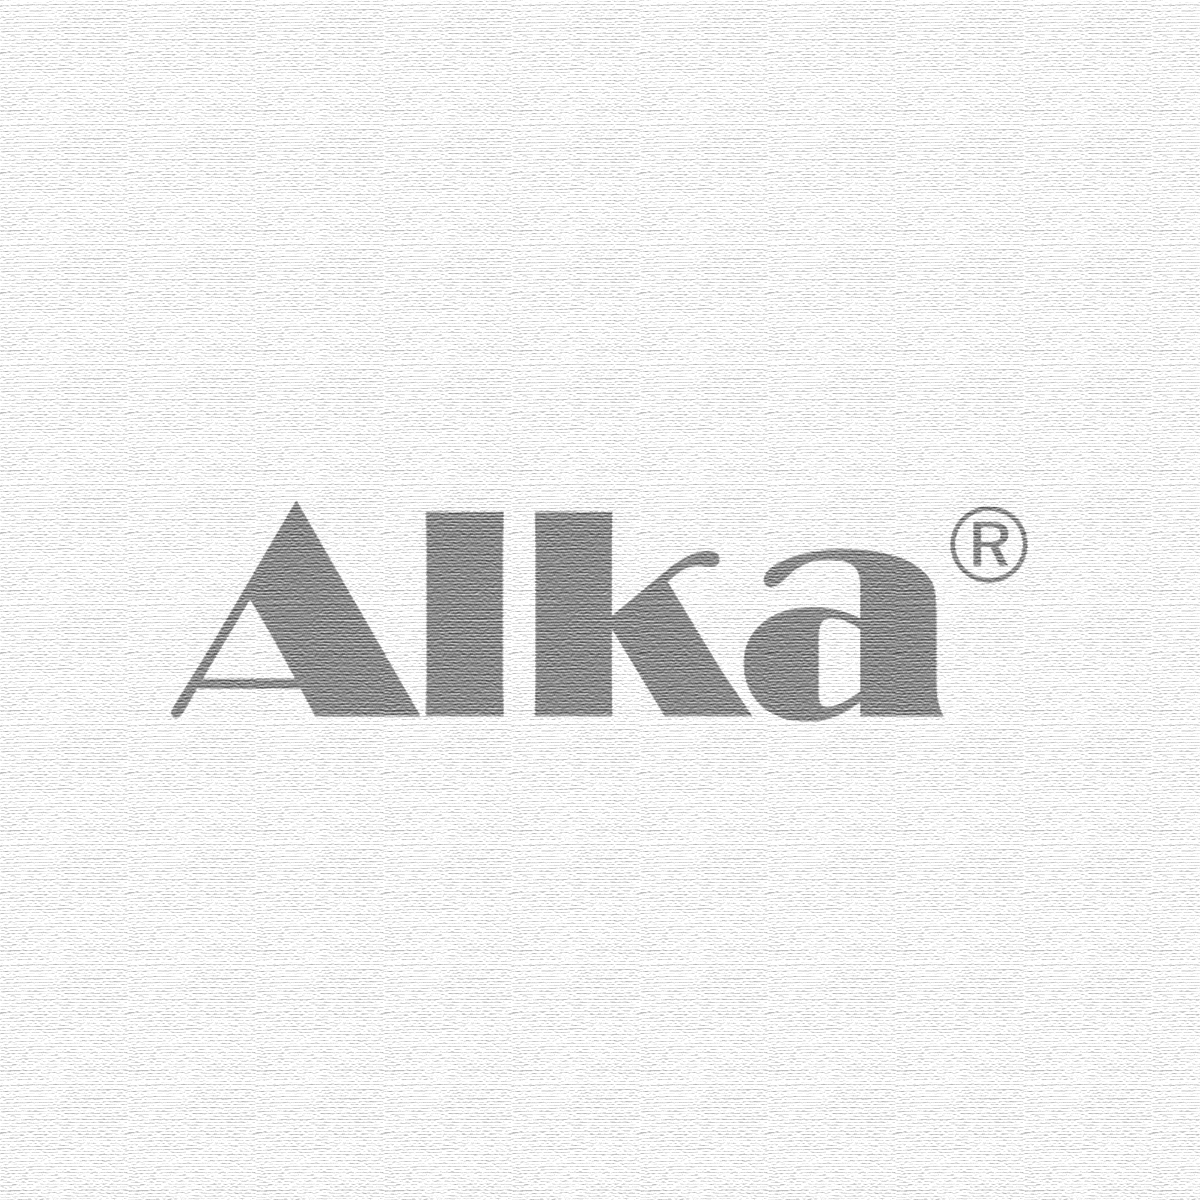 Alka® Drops - 37ml - Dutch label